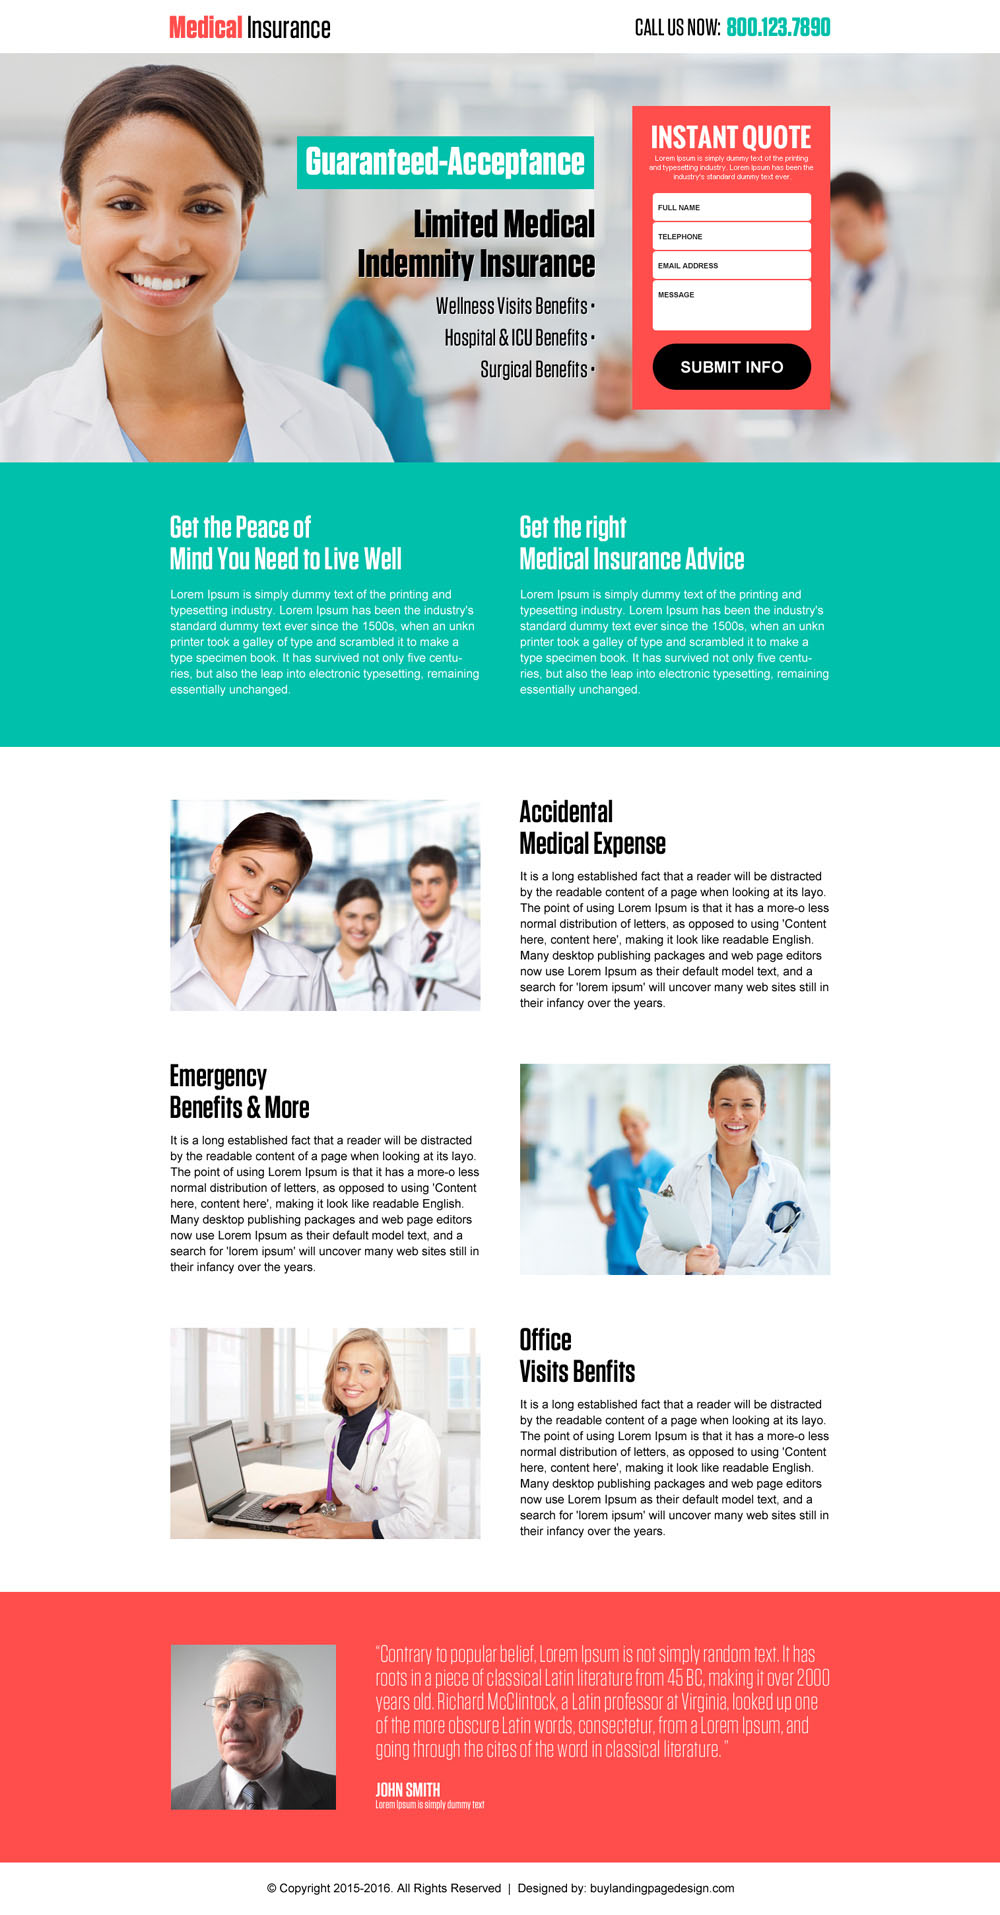 medical-insurance-instant-quote-service-lead-generation-landing-page-design-001